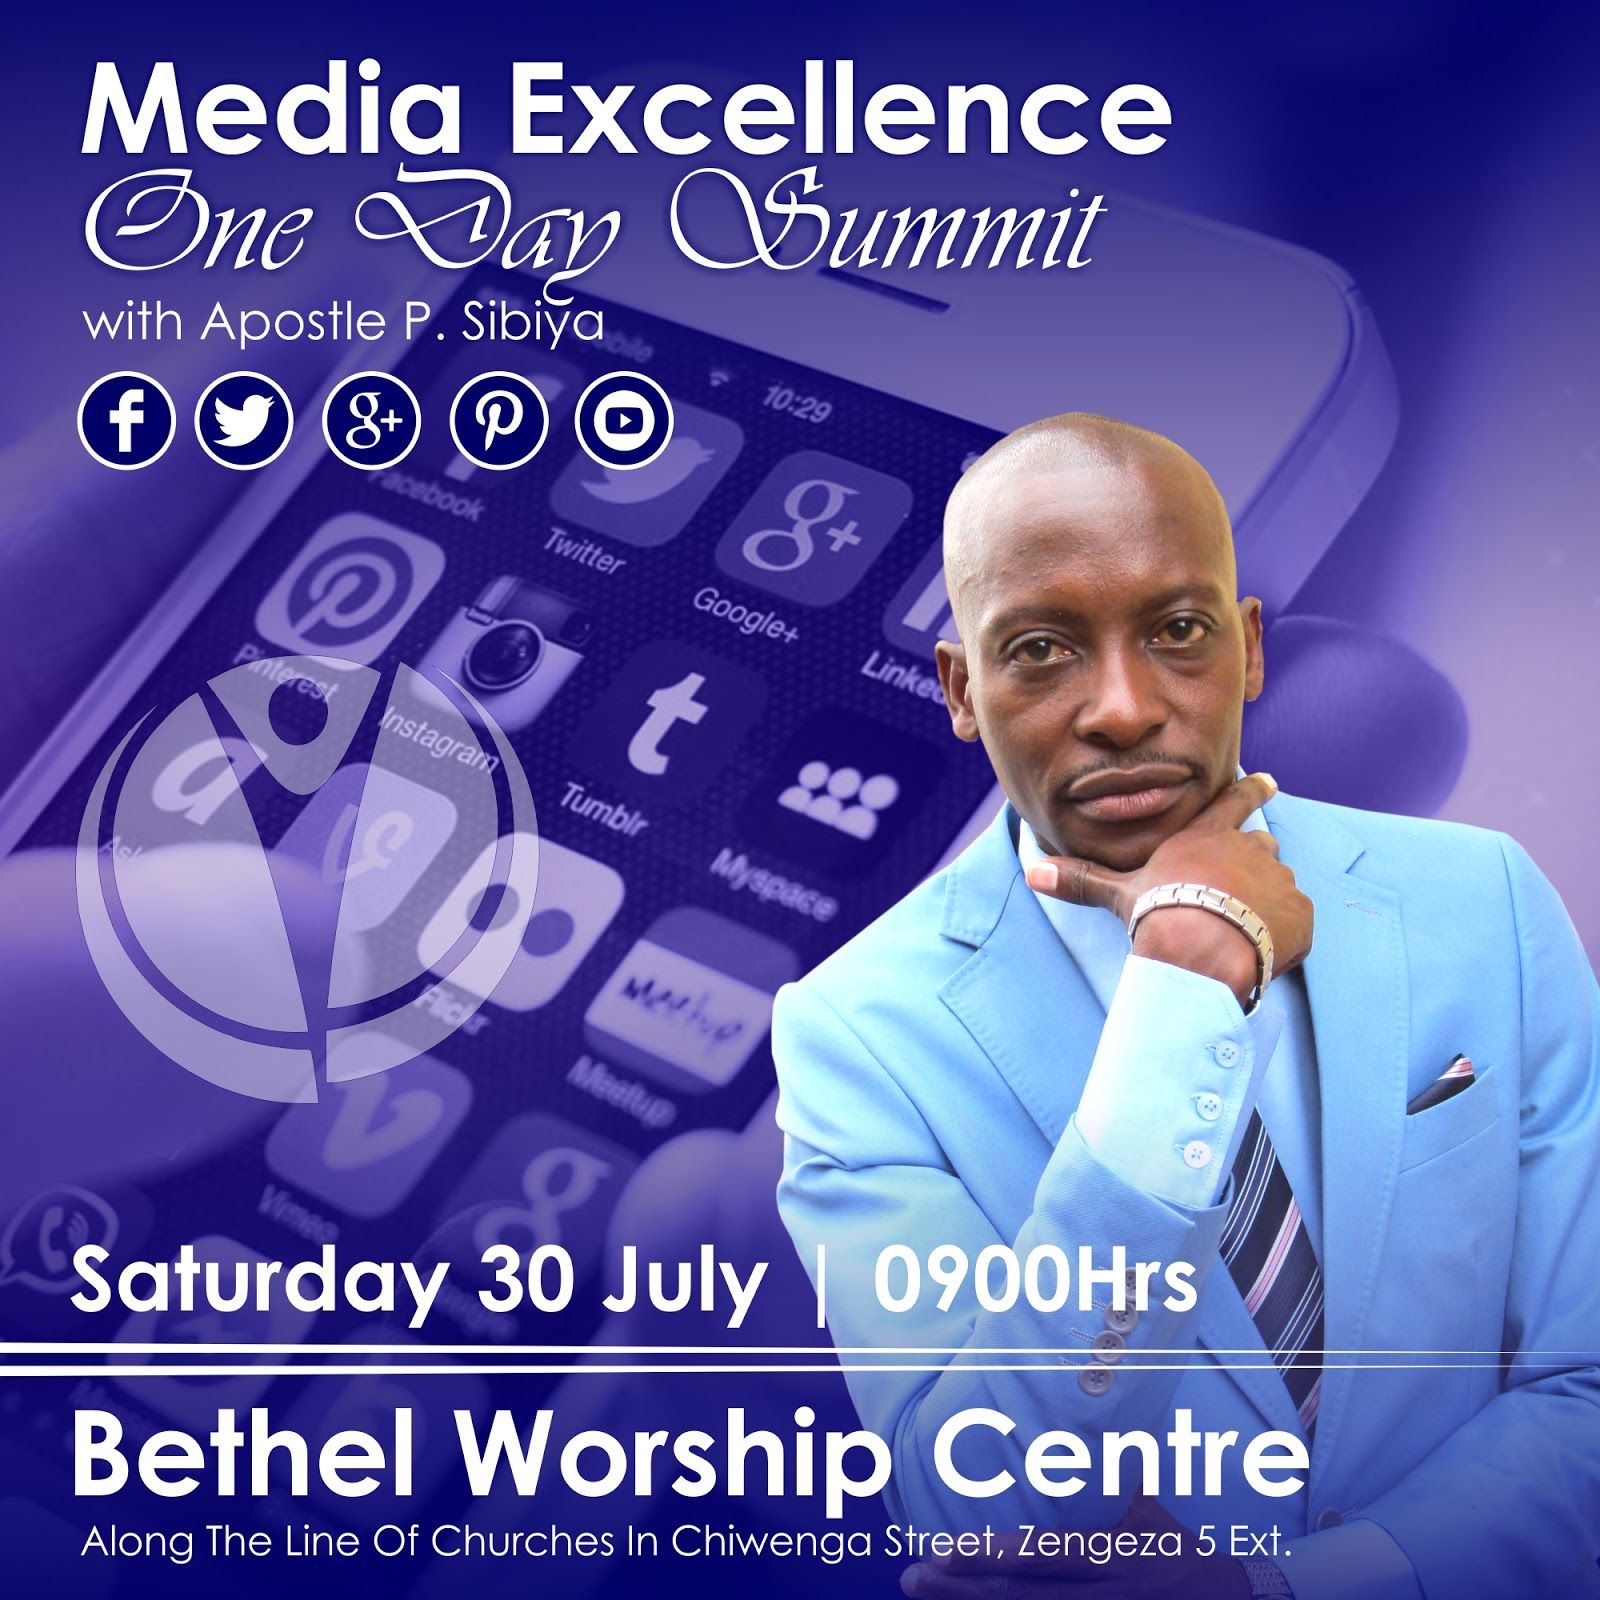 Media Excellence Summit - with Apostle P. Sibiya